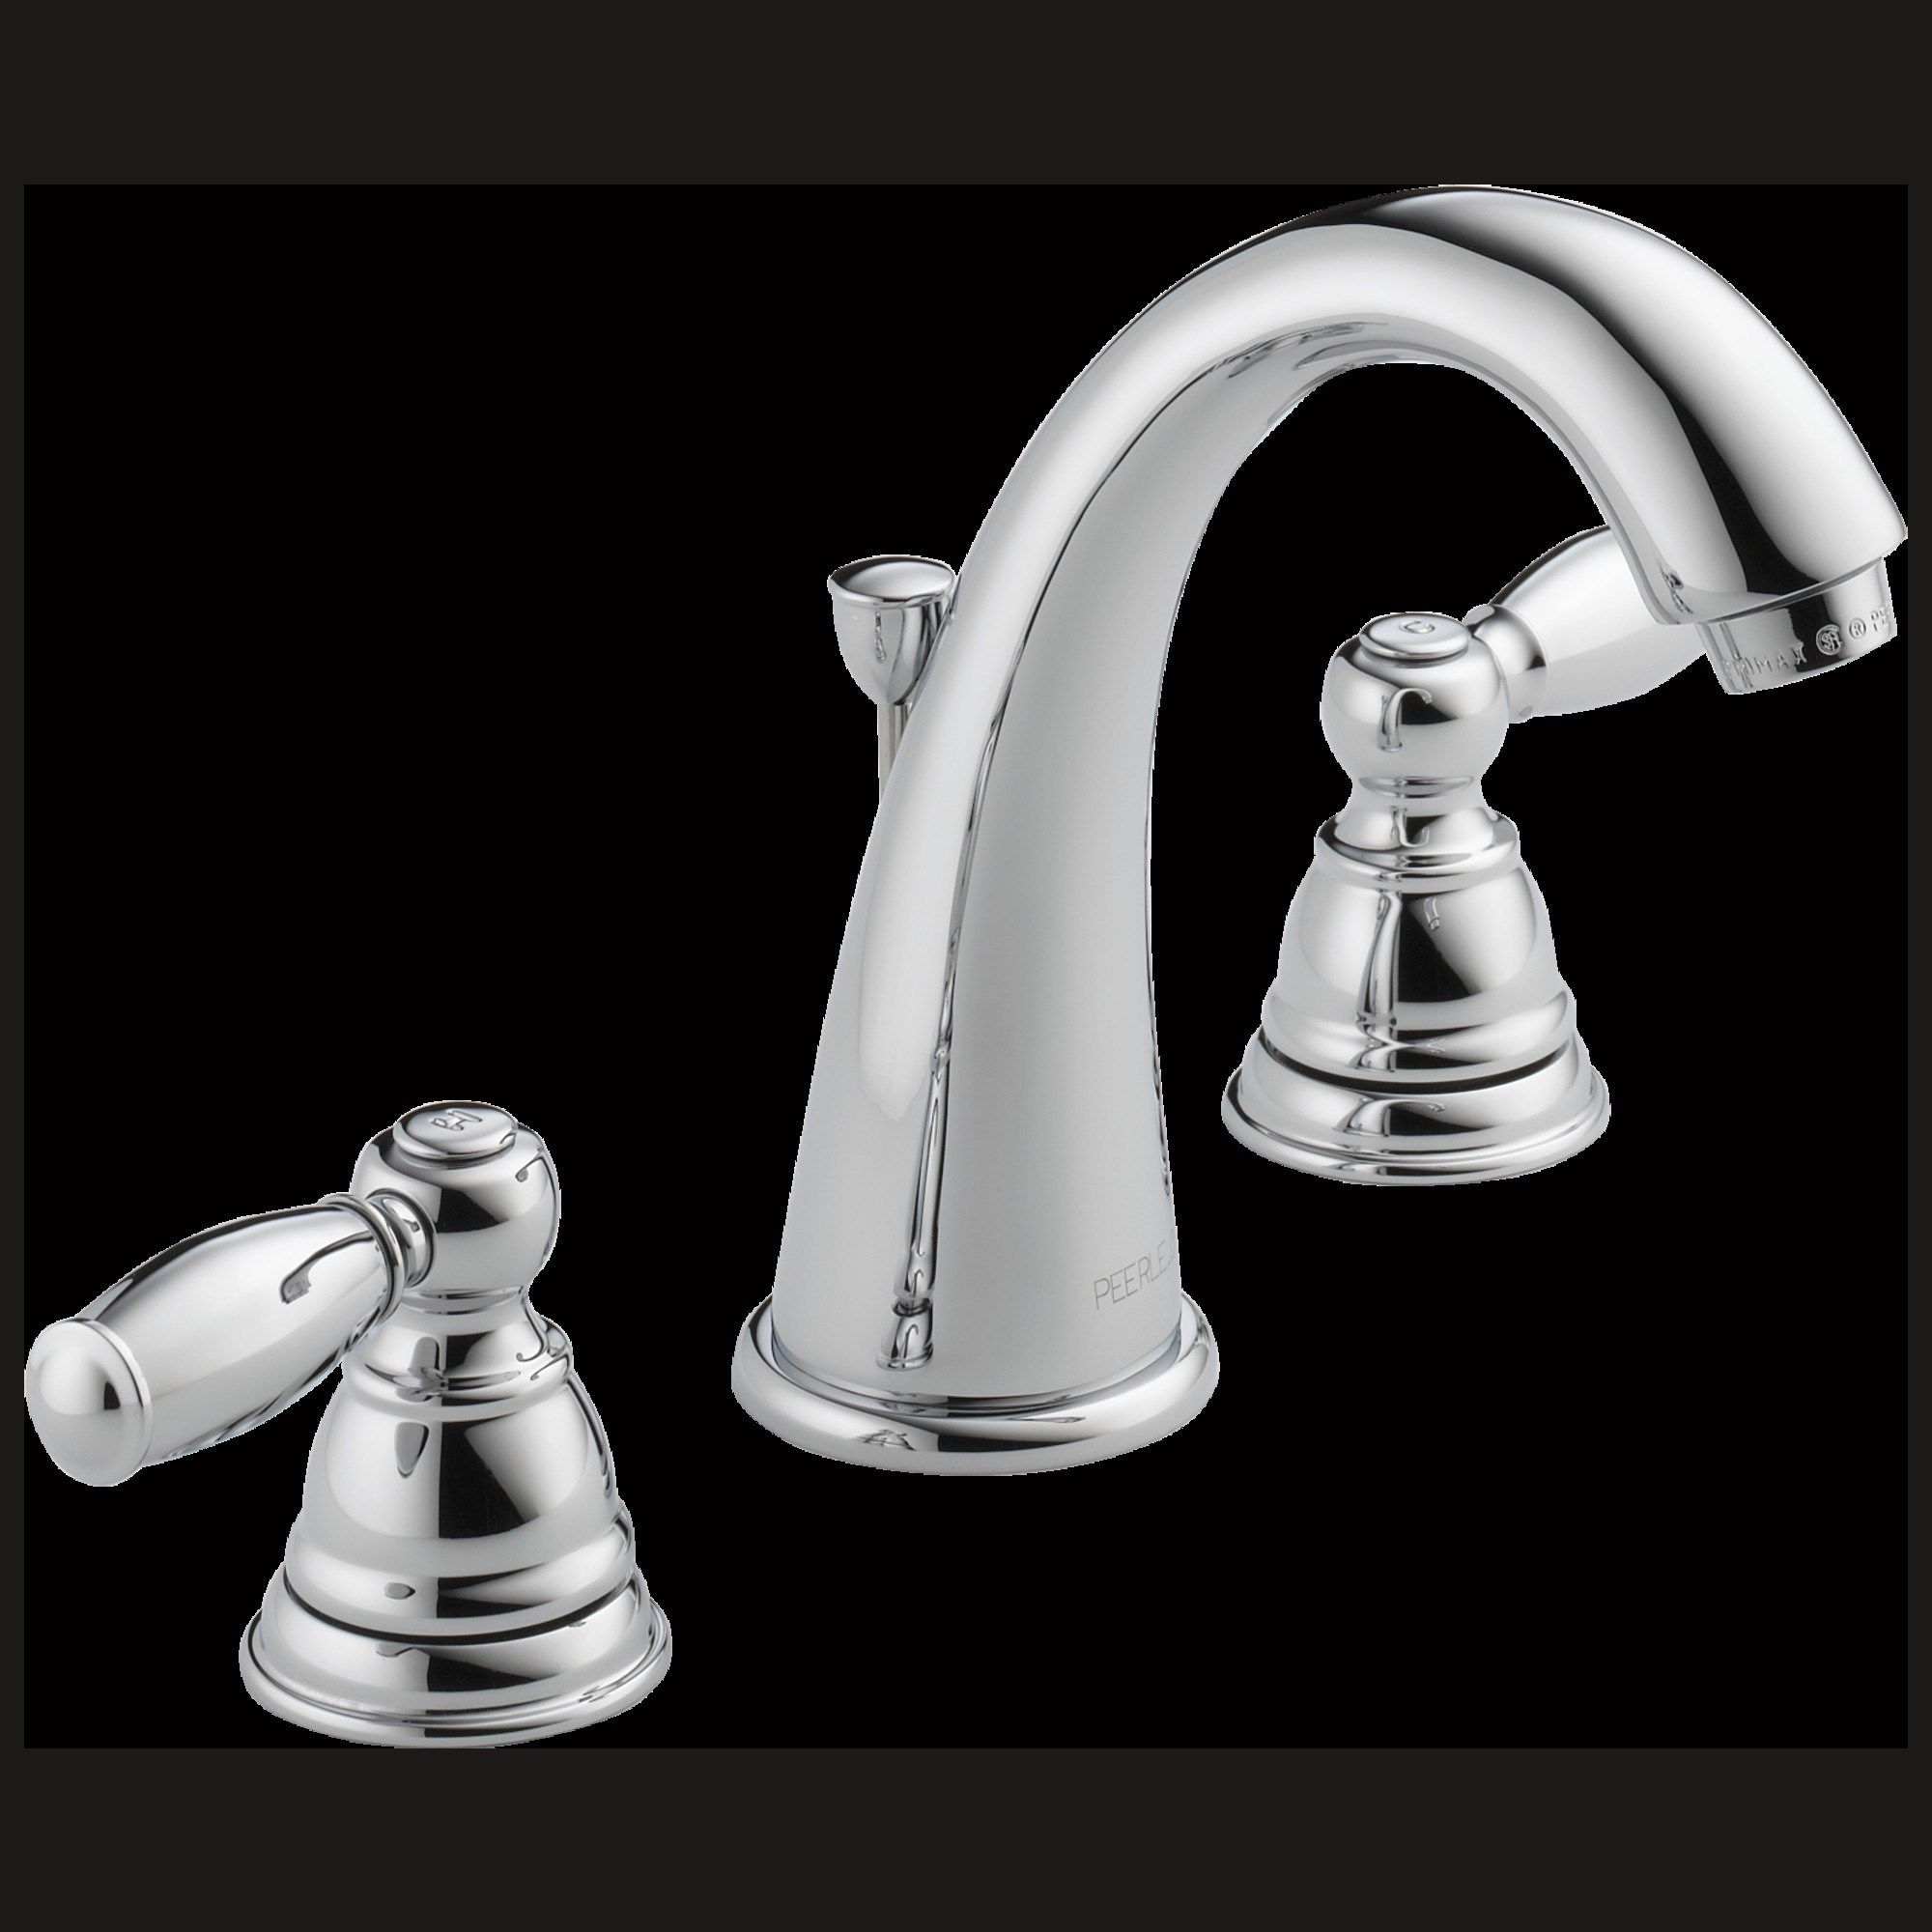 Luxury Delta Bathroom Faucets Reviews | Faucet, Kohler bathroom and ...